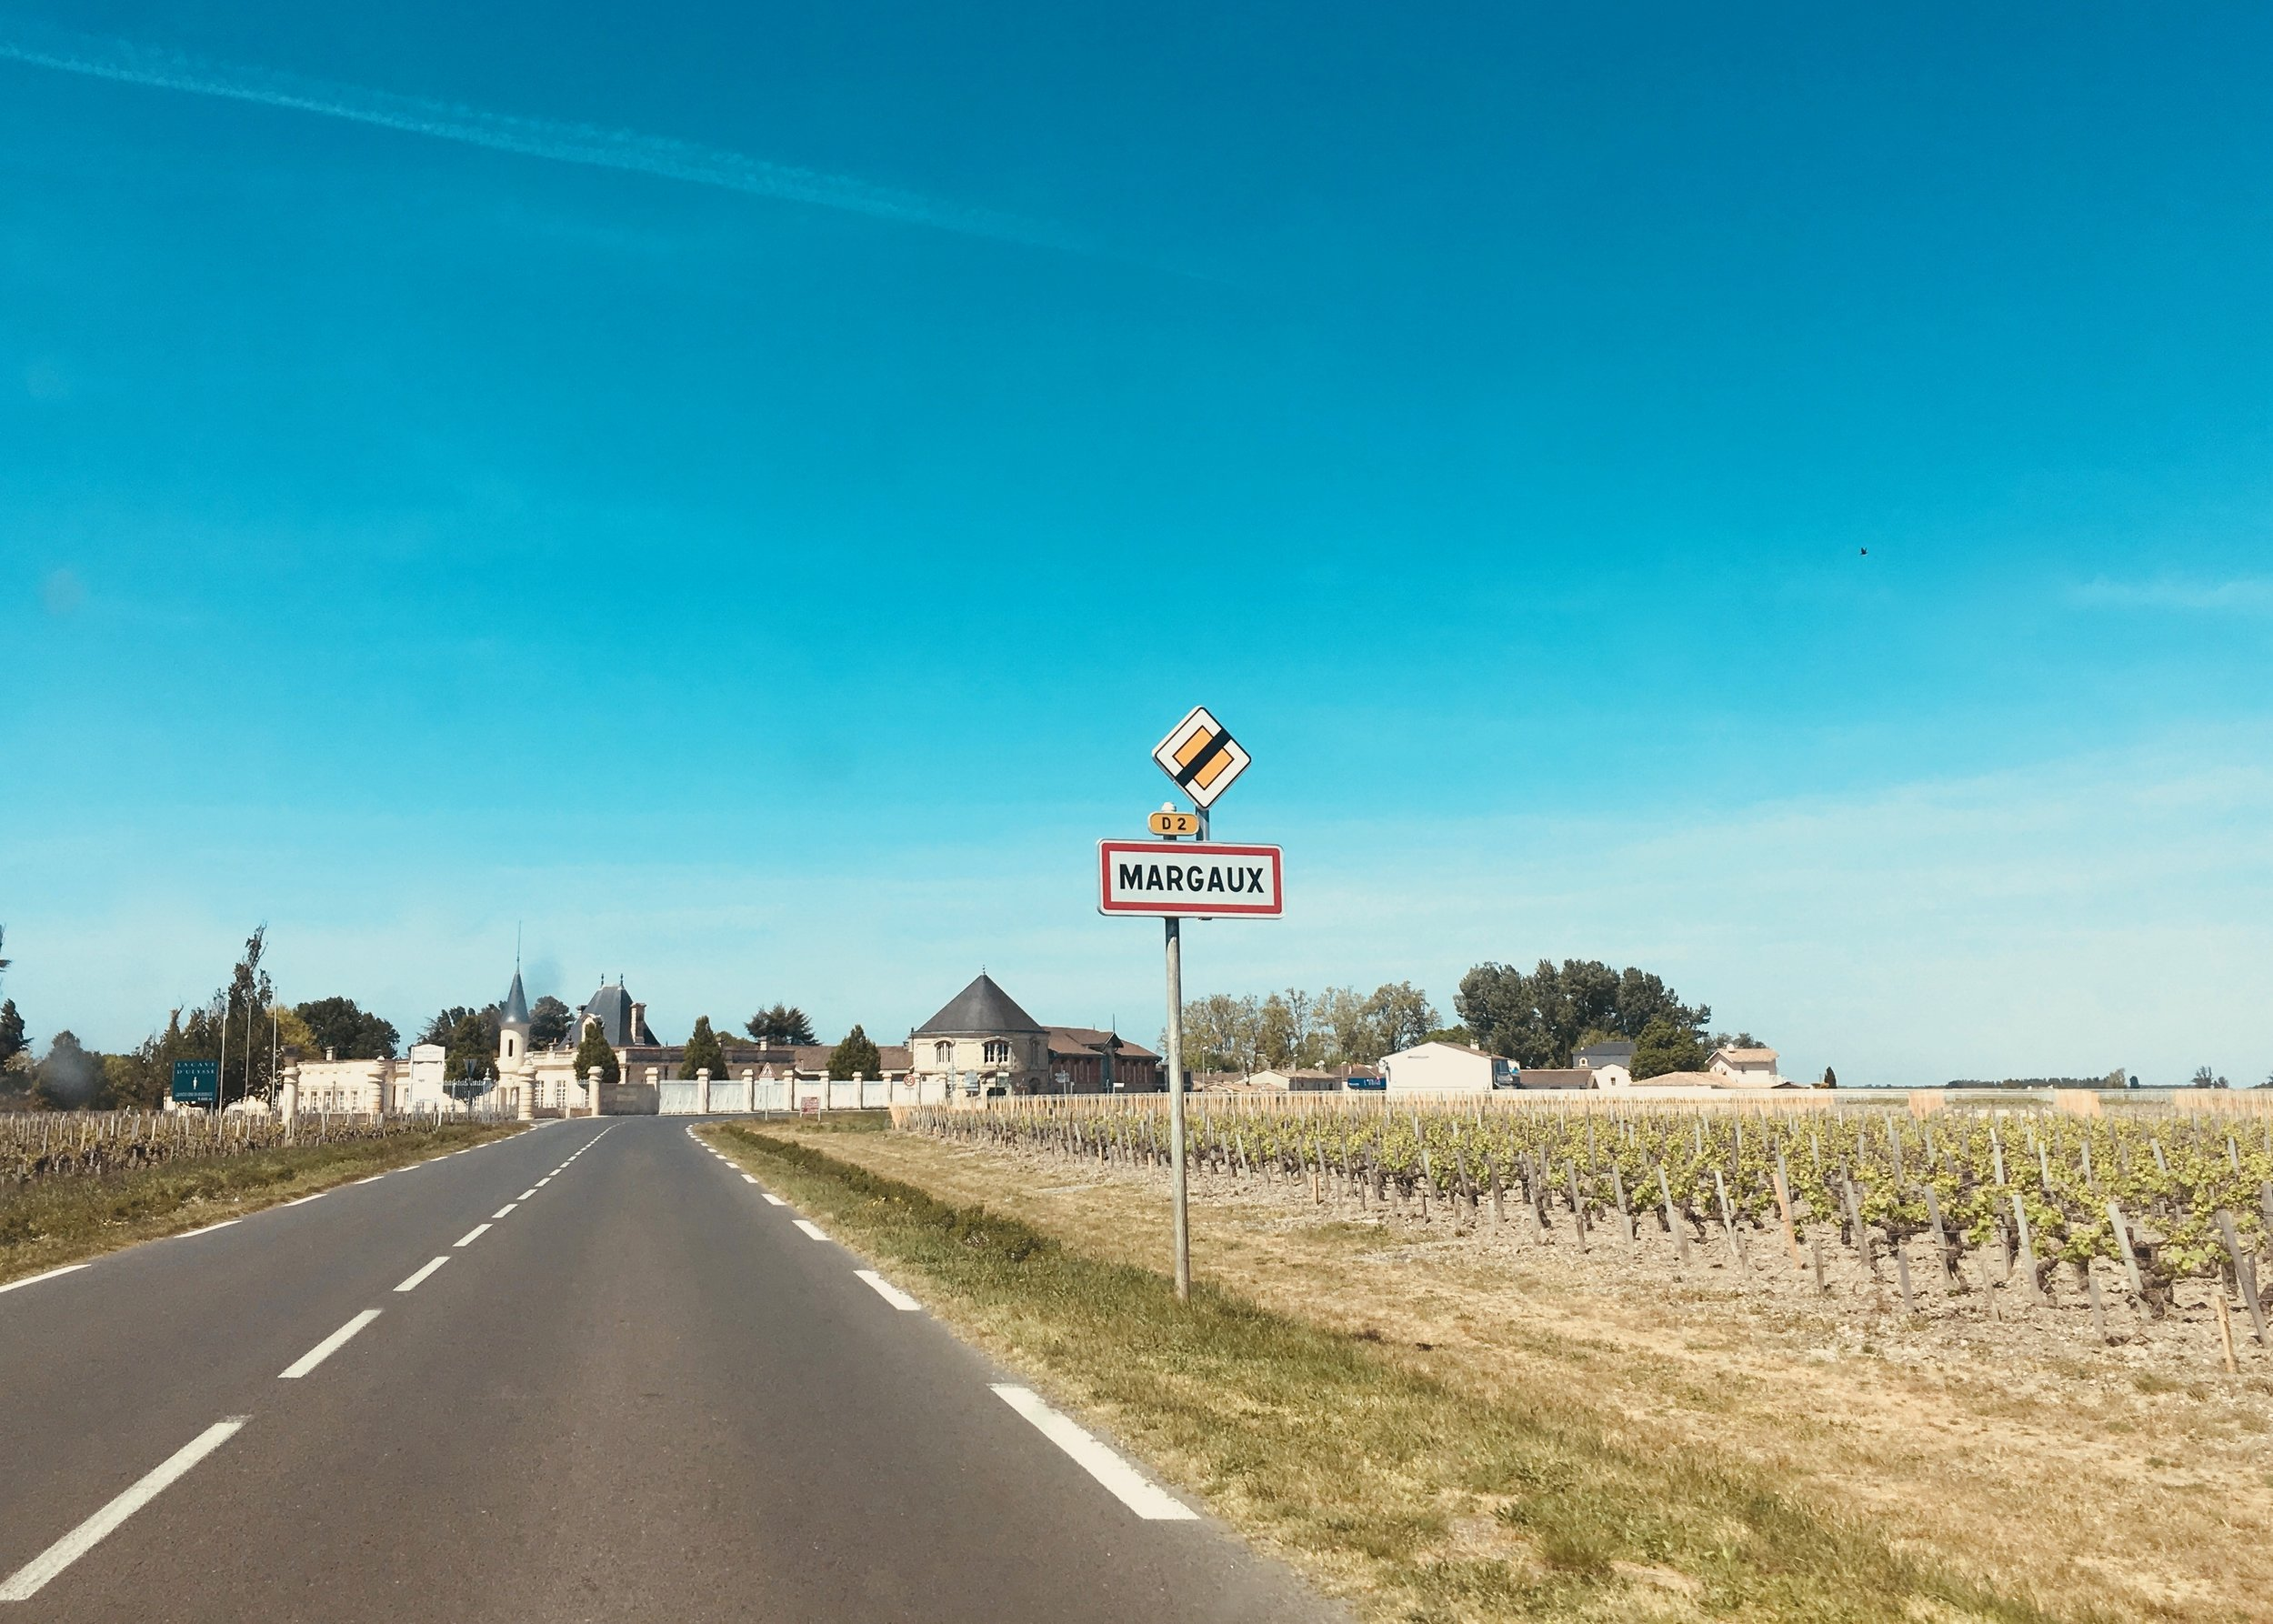 margaux route des chateaux wine tour vineyards sanctuary surf holiday.jpg